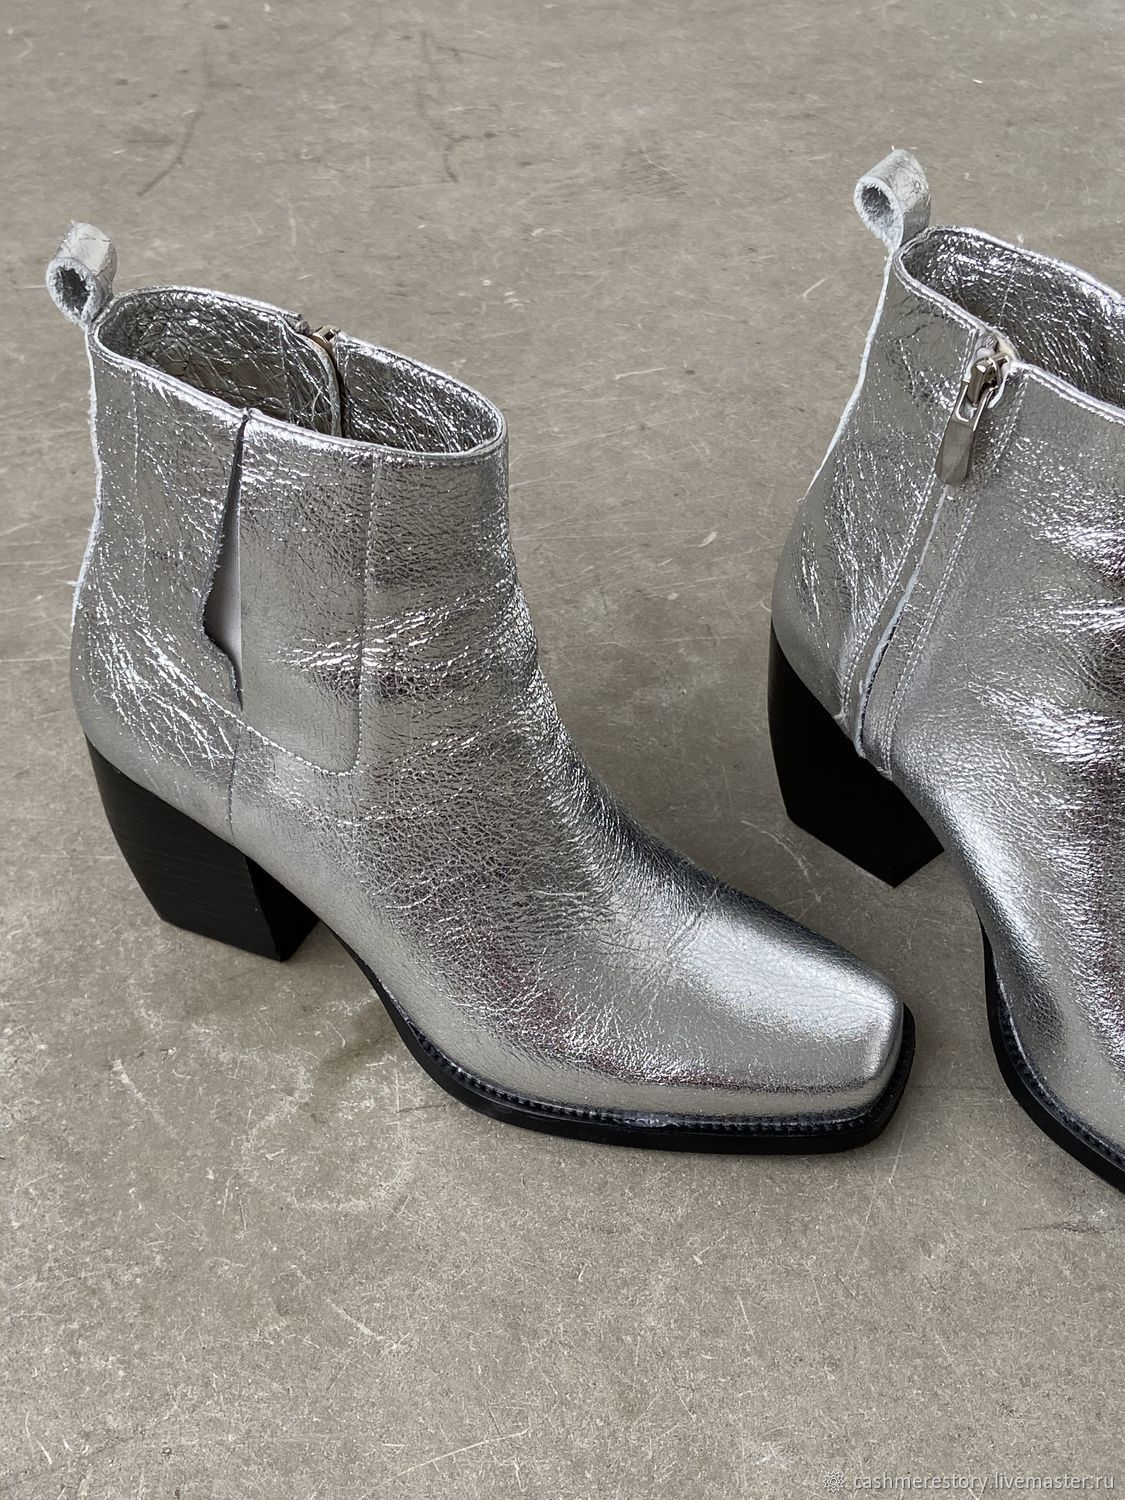 Silver Metallic Leather Ankle Boots, Ankle boot, Moscow,  Фото №1